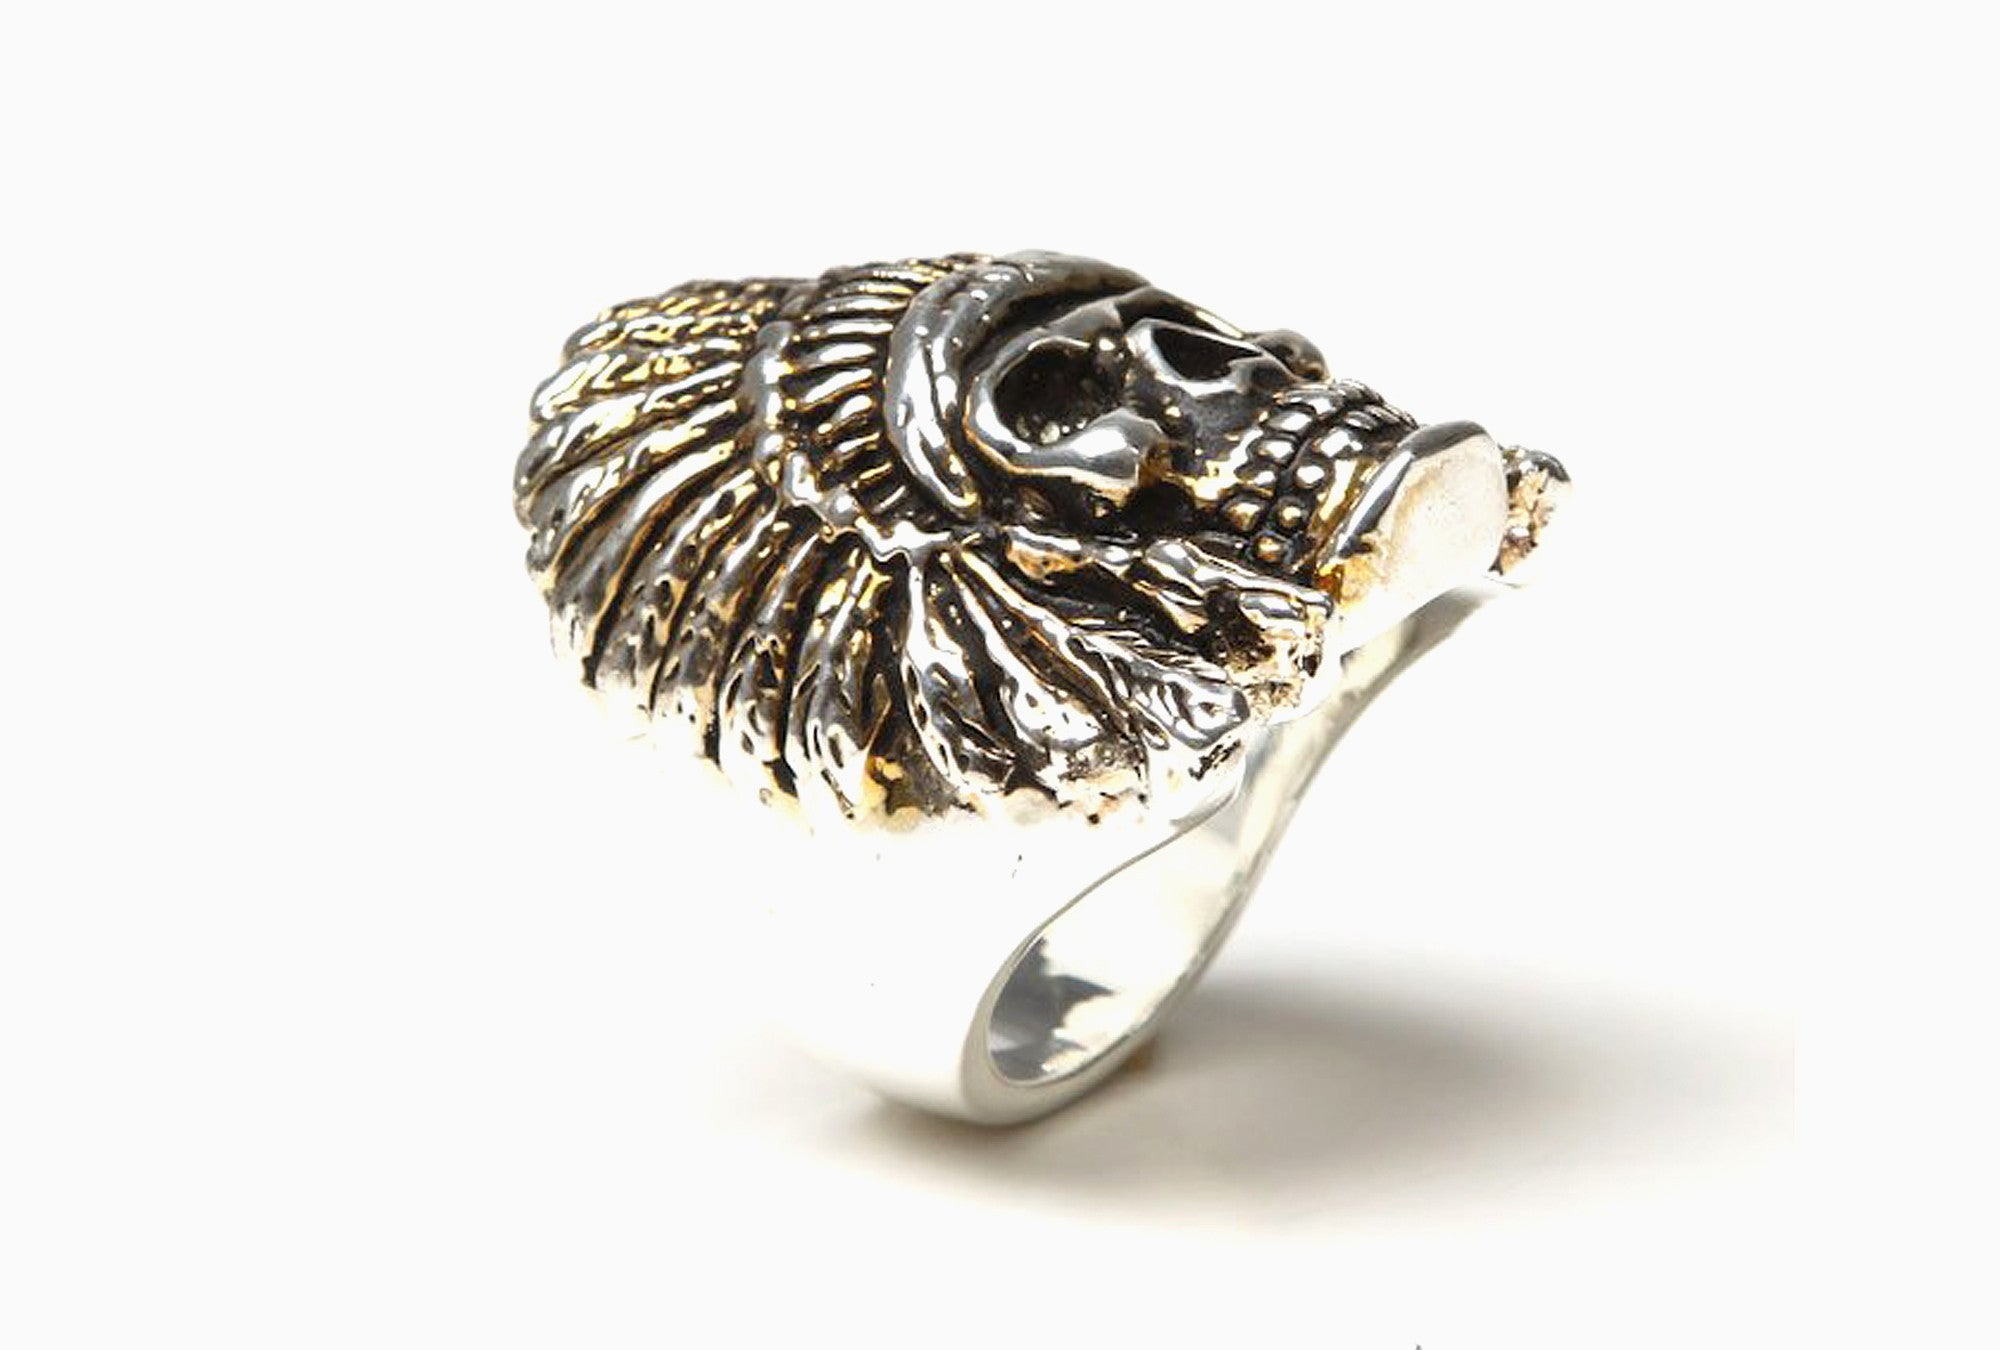 Indian Chief Ring (Silver)